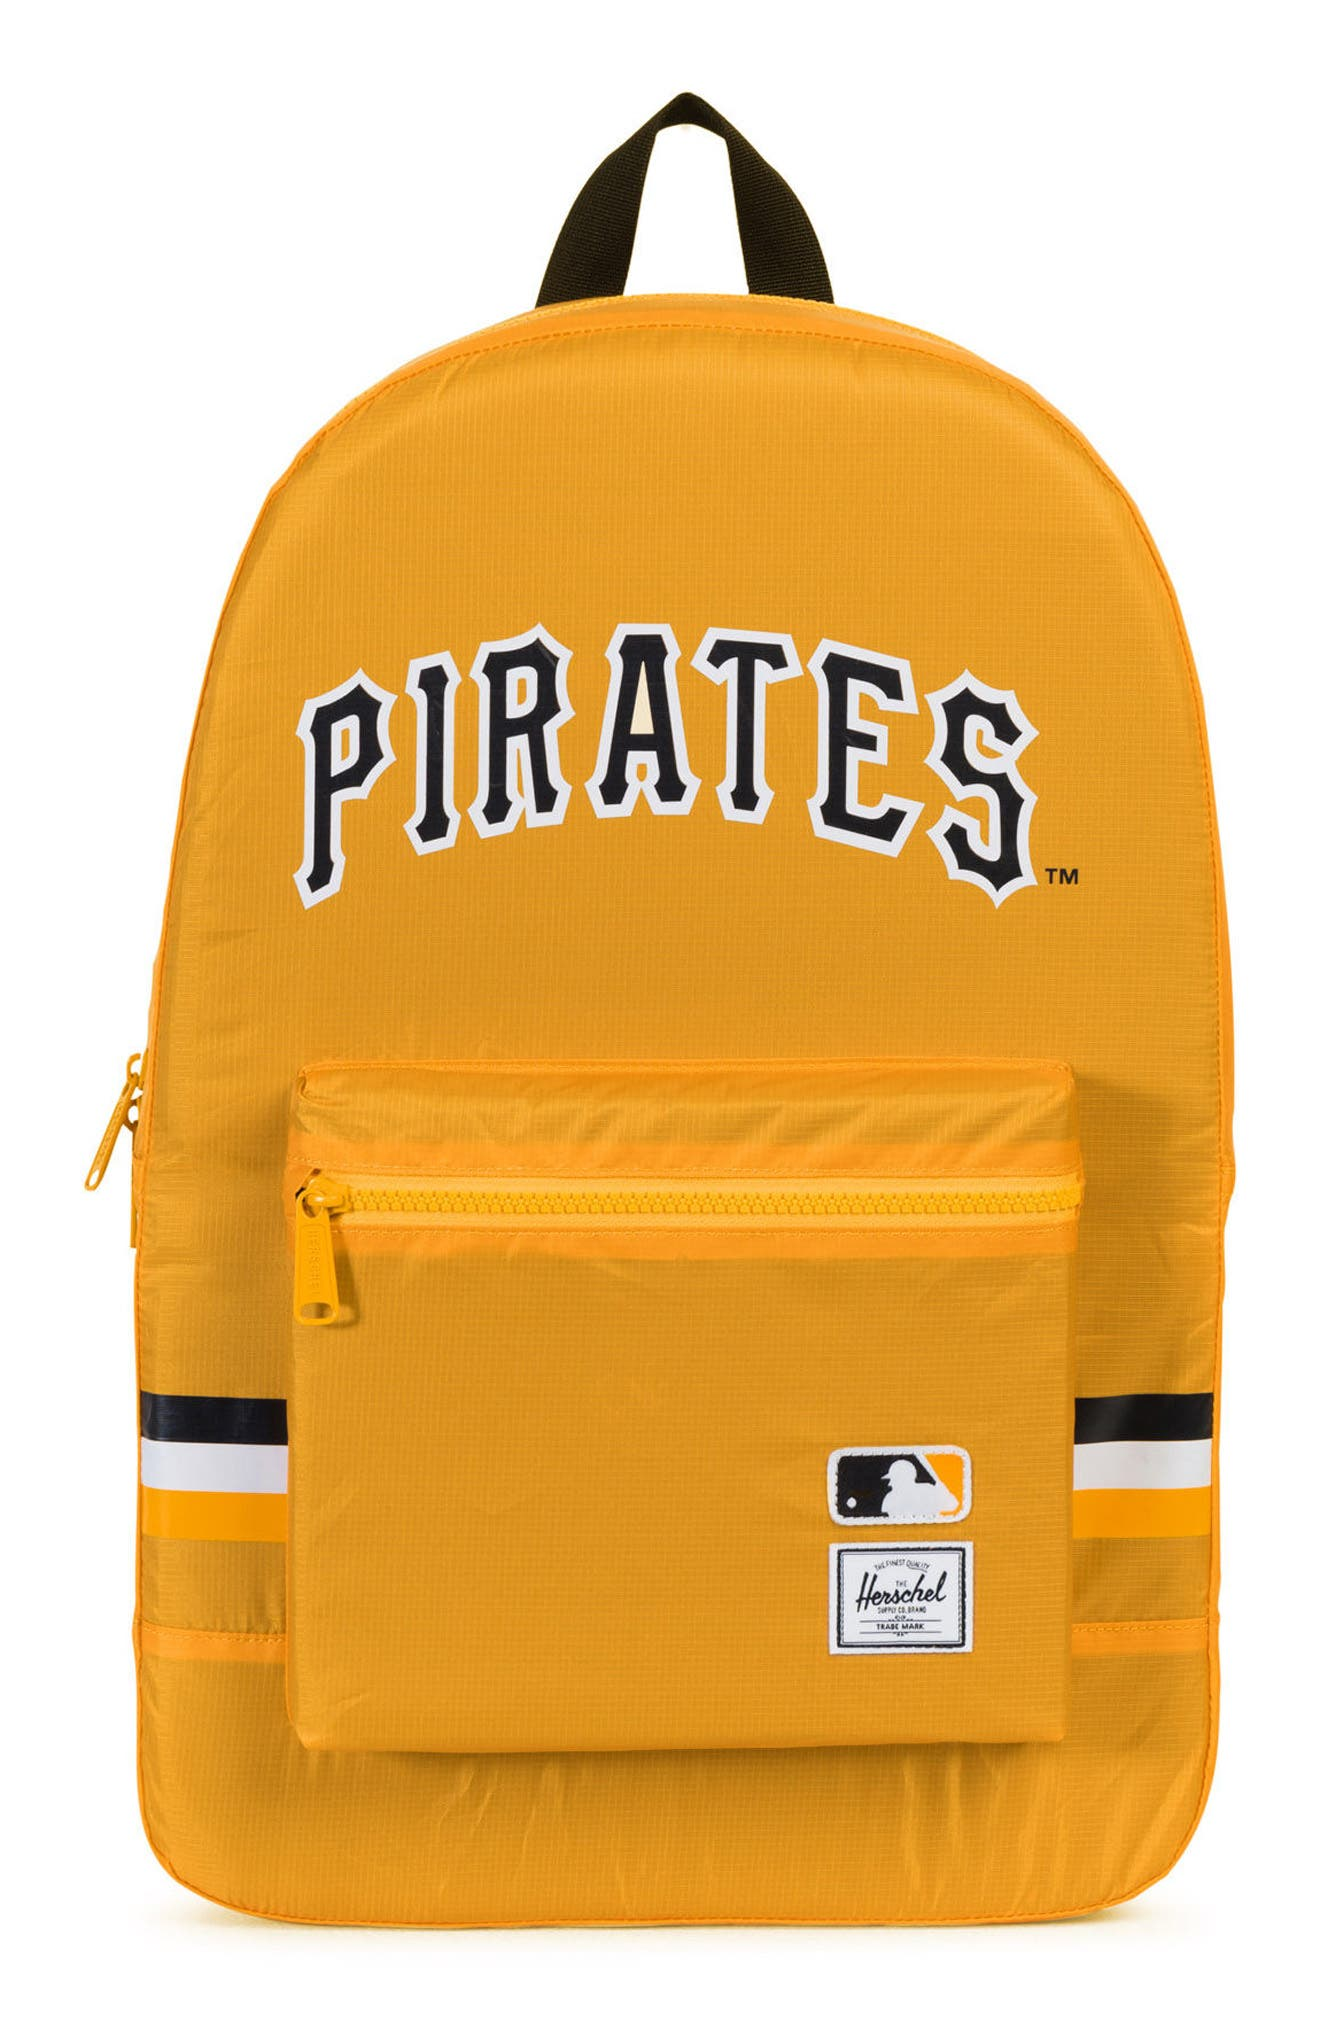 PACKABLE - MLB NATIONAL LEAGUE BACKPACK - YELLOW